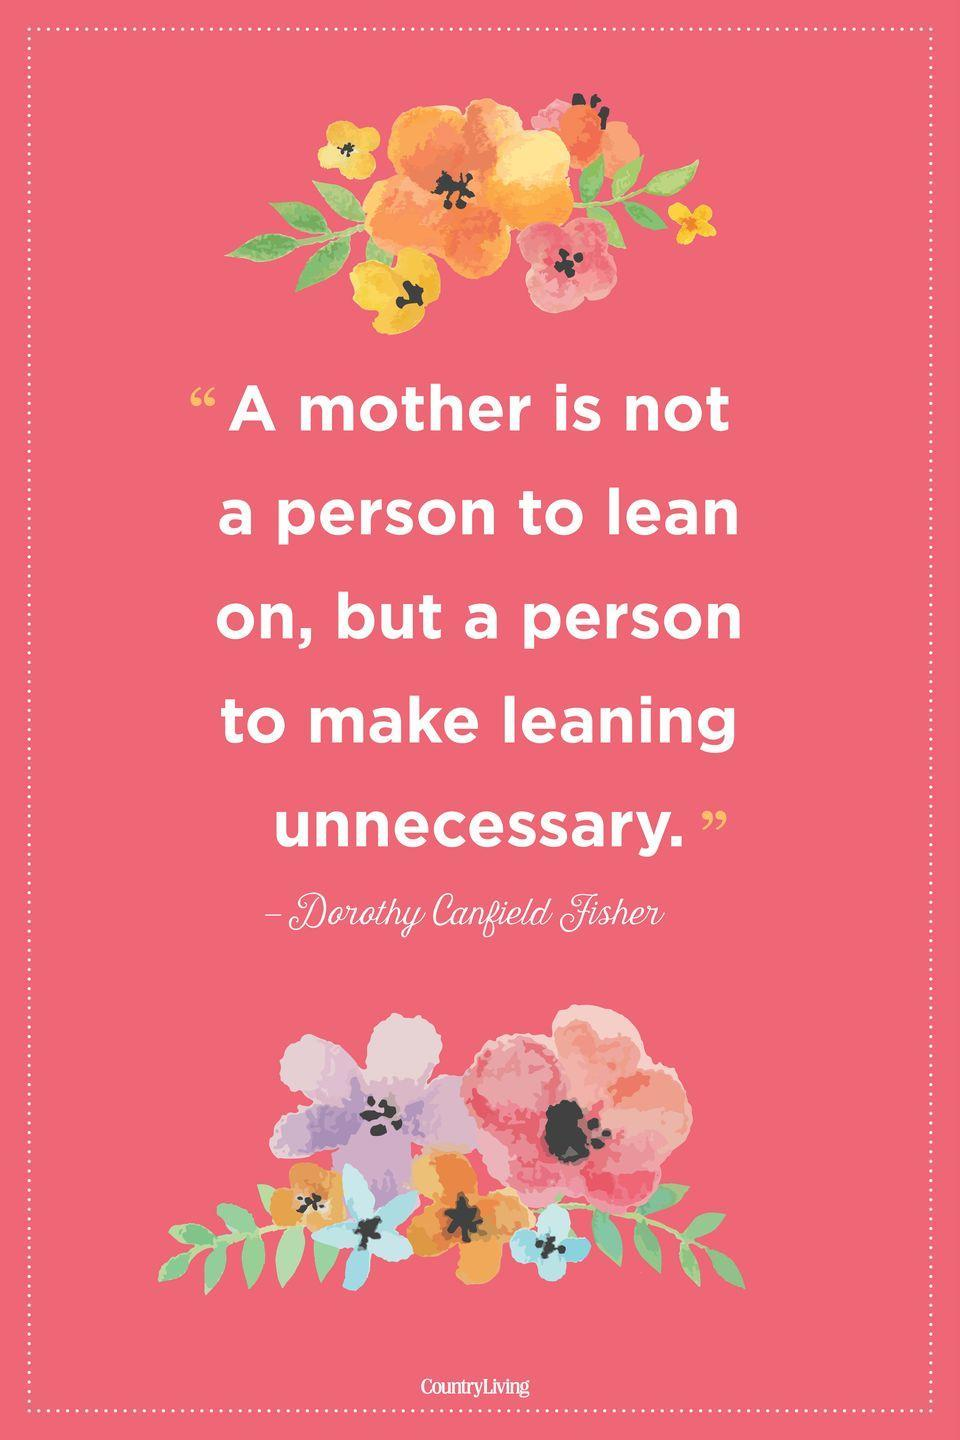 "<p>""A mother is not a person to lean on, but a person to make leaning unnecessary.""</p>"